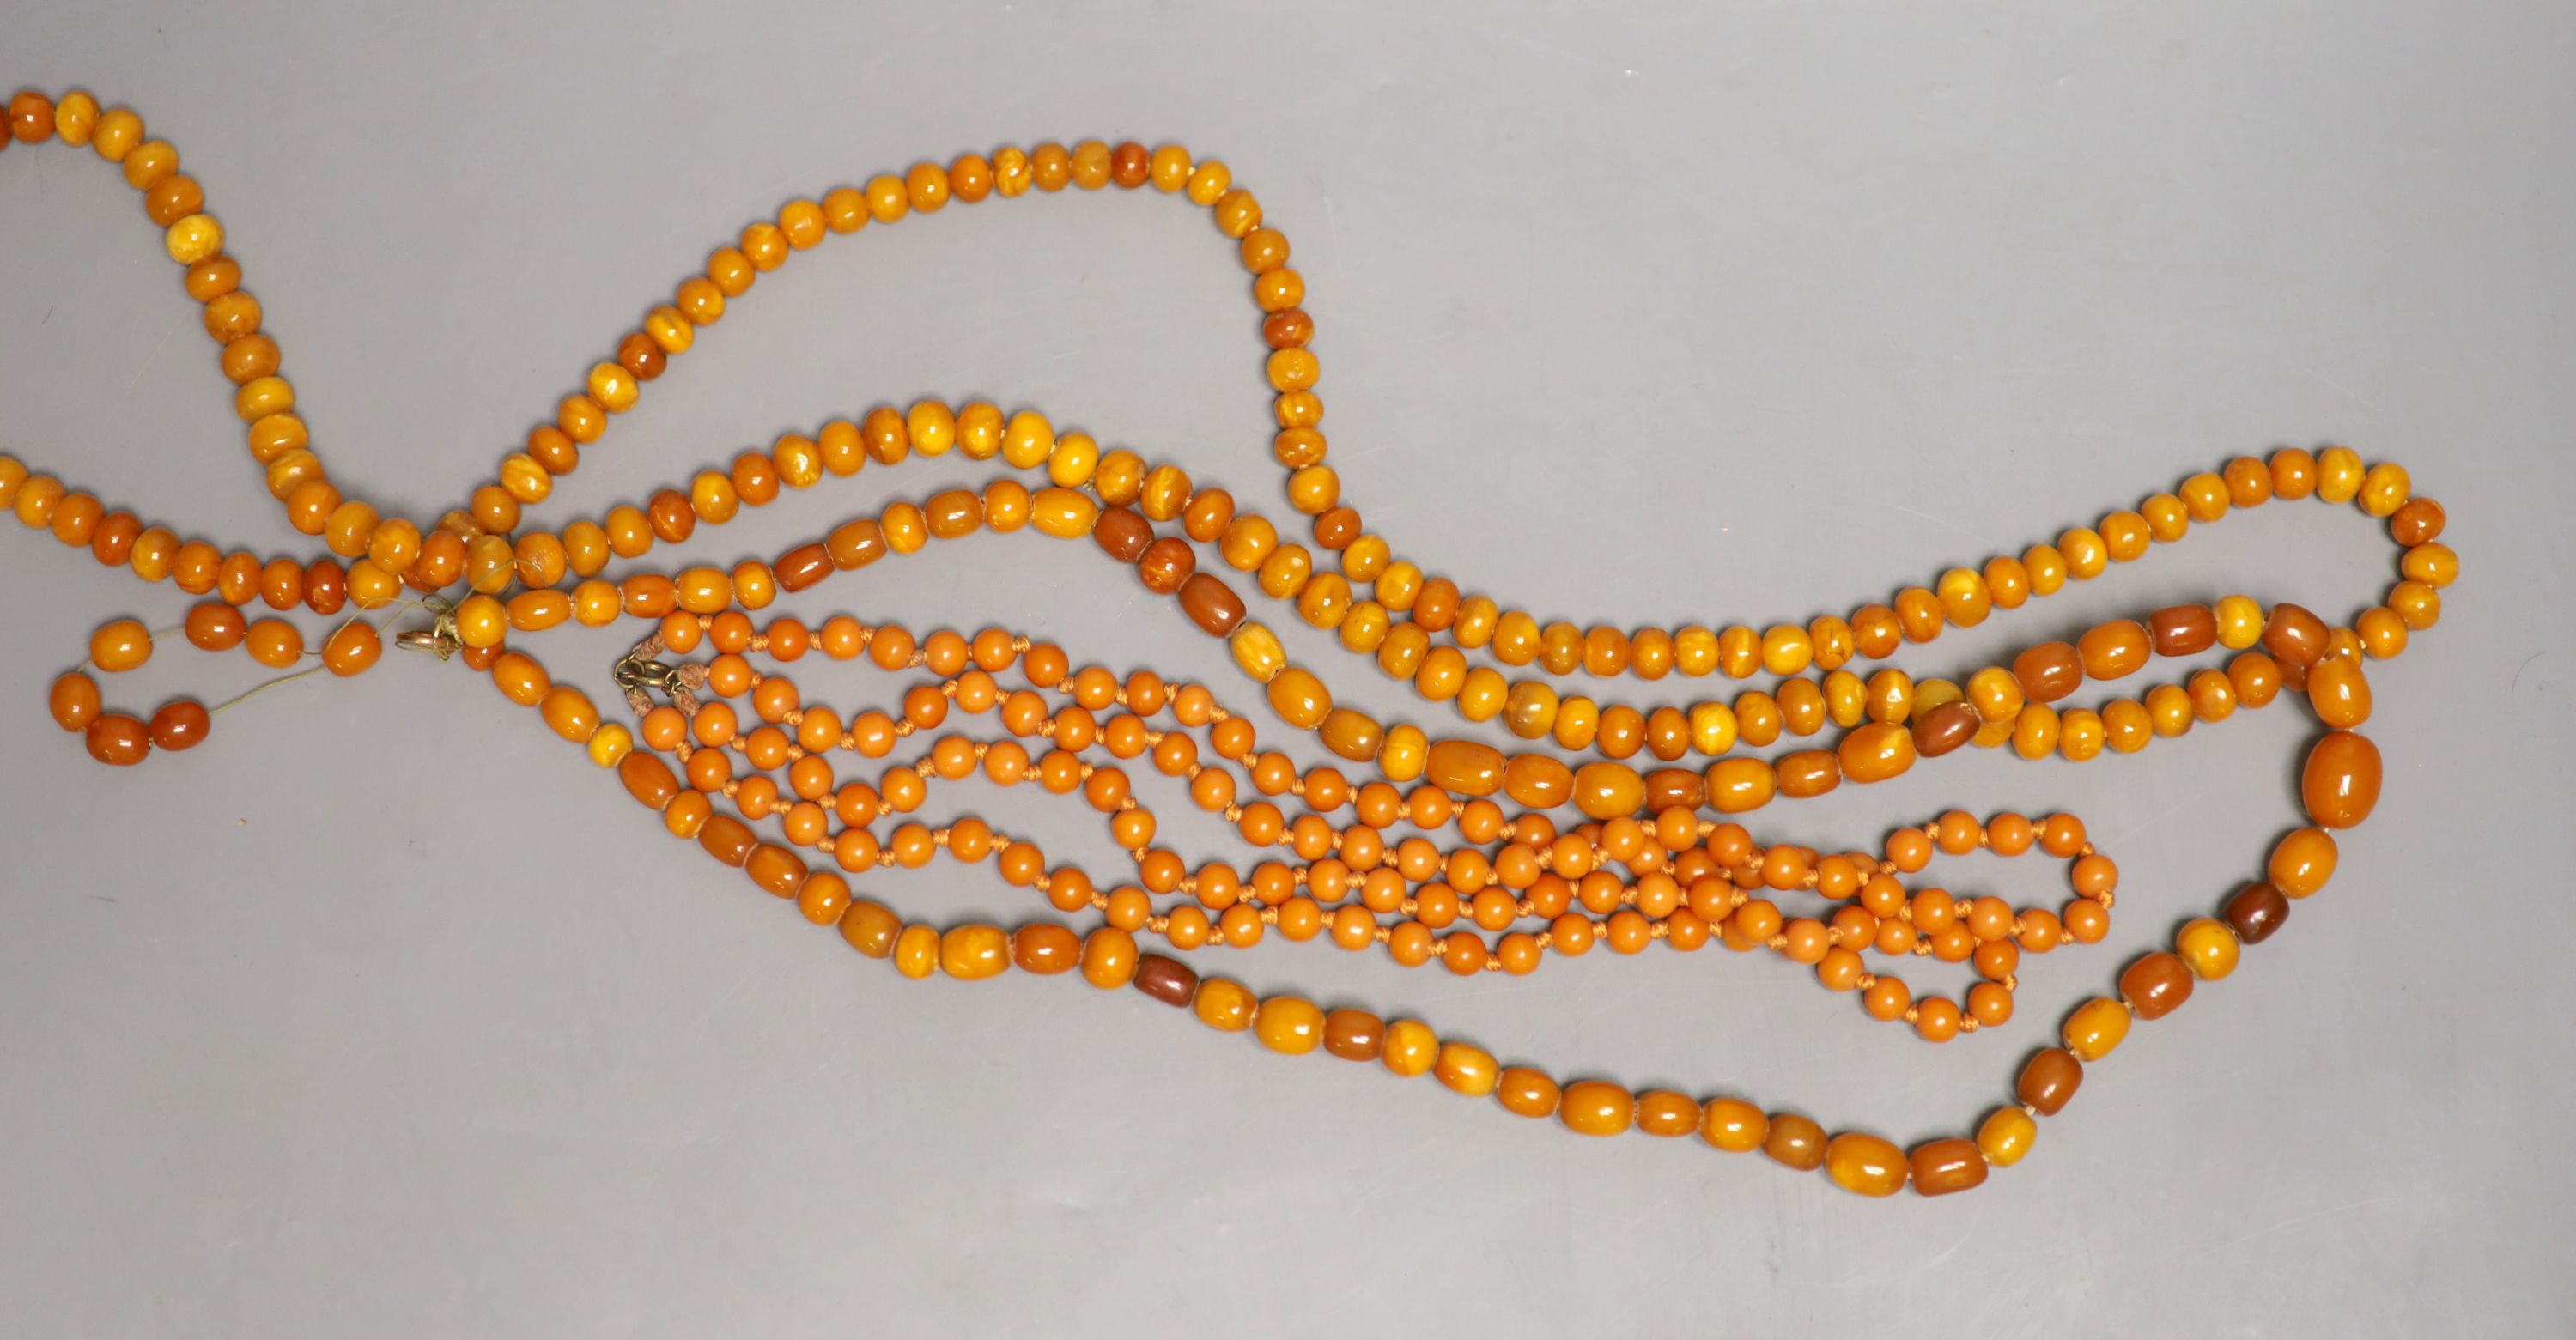 Two single strand amber bead necklaces, 106cm and 88cm, gross 95 grams and a reconstituted amber? - Image 2 of 2